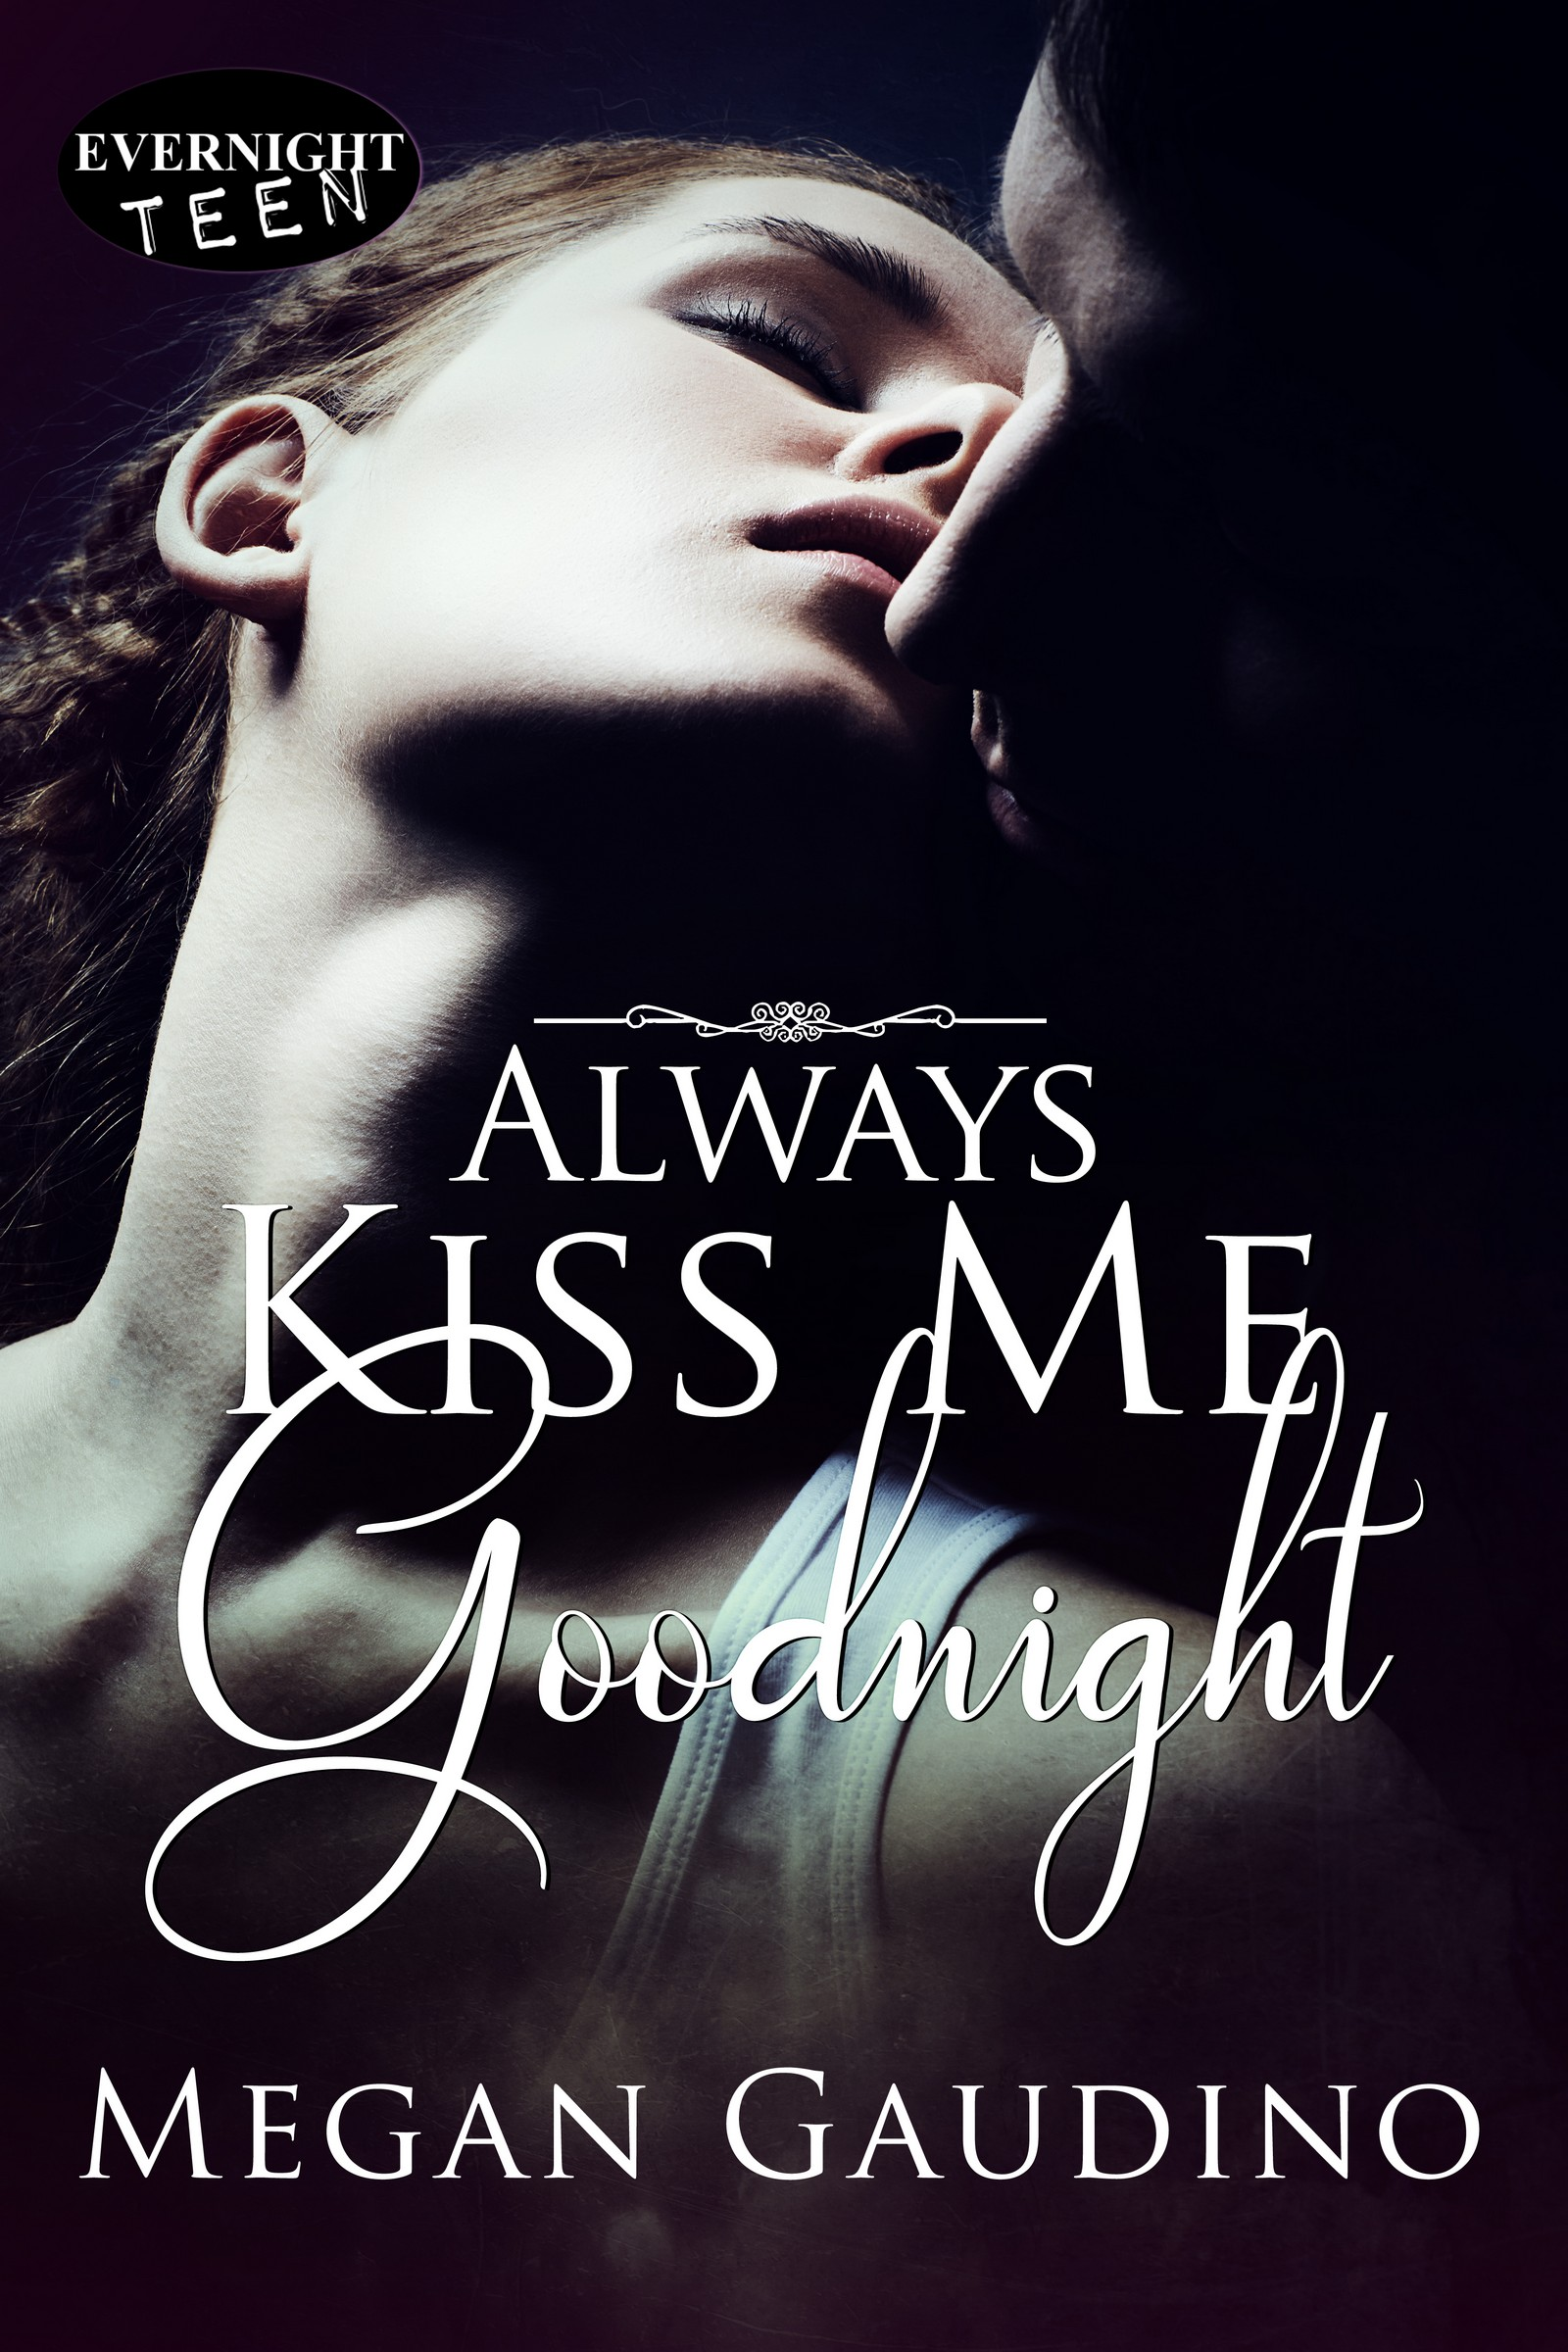 Always Kiss Me Goodnight, an Ebook by Megan Gaudino